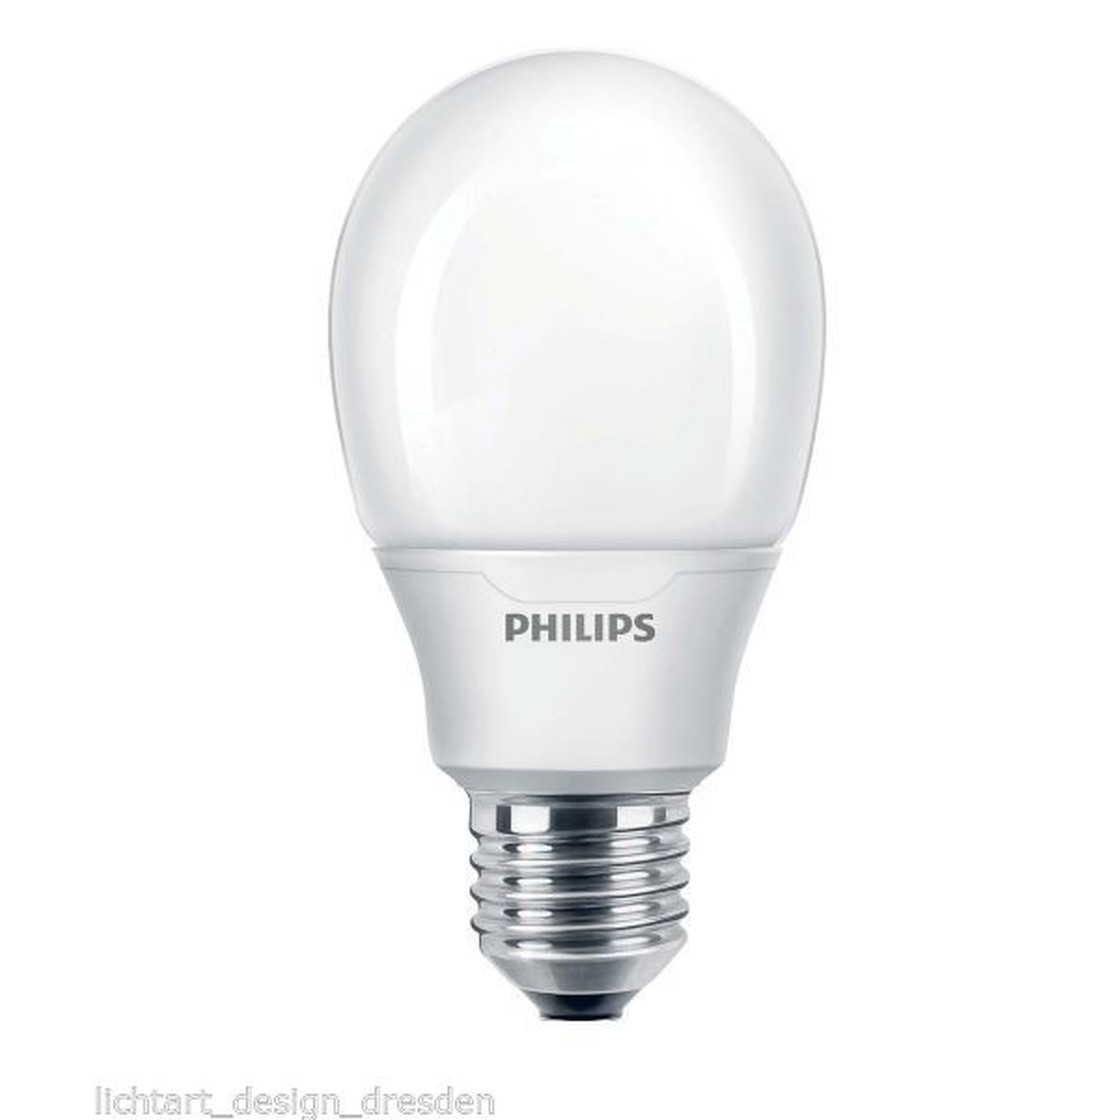 philips 682646 softone energiesparlampe 15w warmwei e27 extras. Black Bedroom Furniture Sets. Home Design Ideas